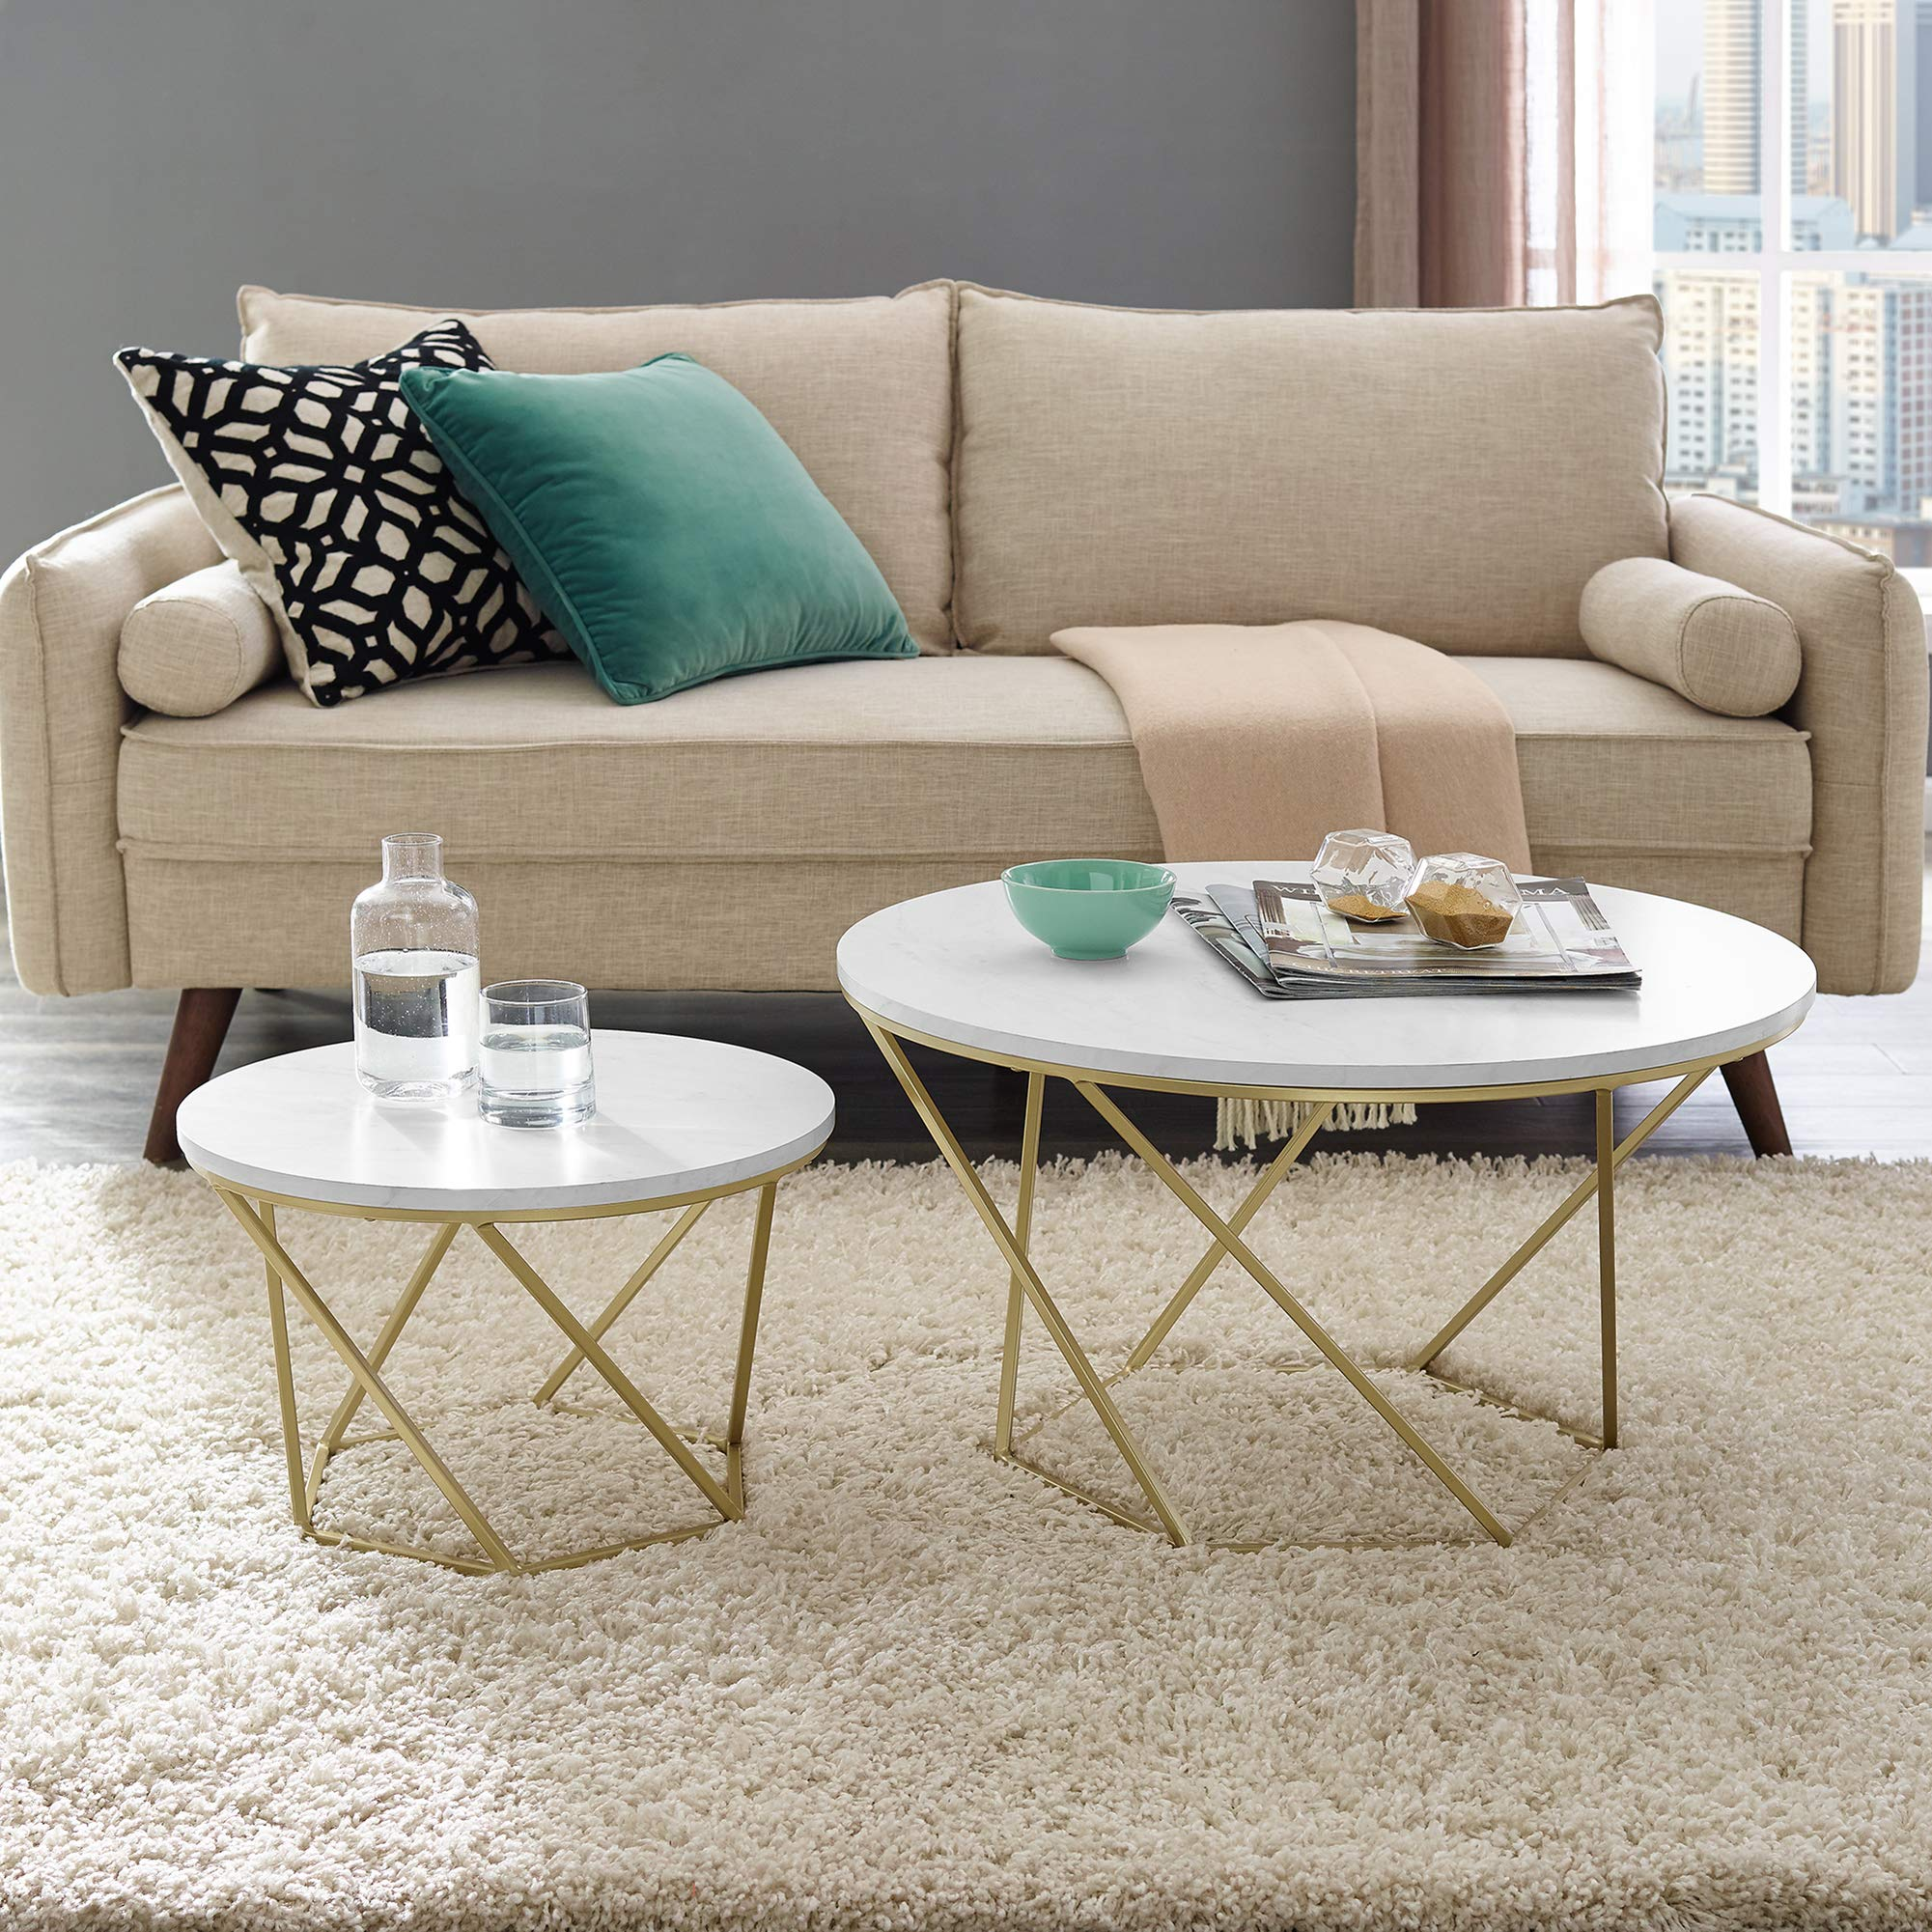 WE Furniture AZF28CLRGMG Modern Round Nesting Coffee Accent Table Living Room, Set of 2, White Marble, Gold by WE Furniture